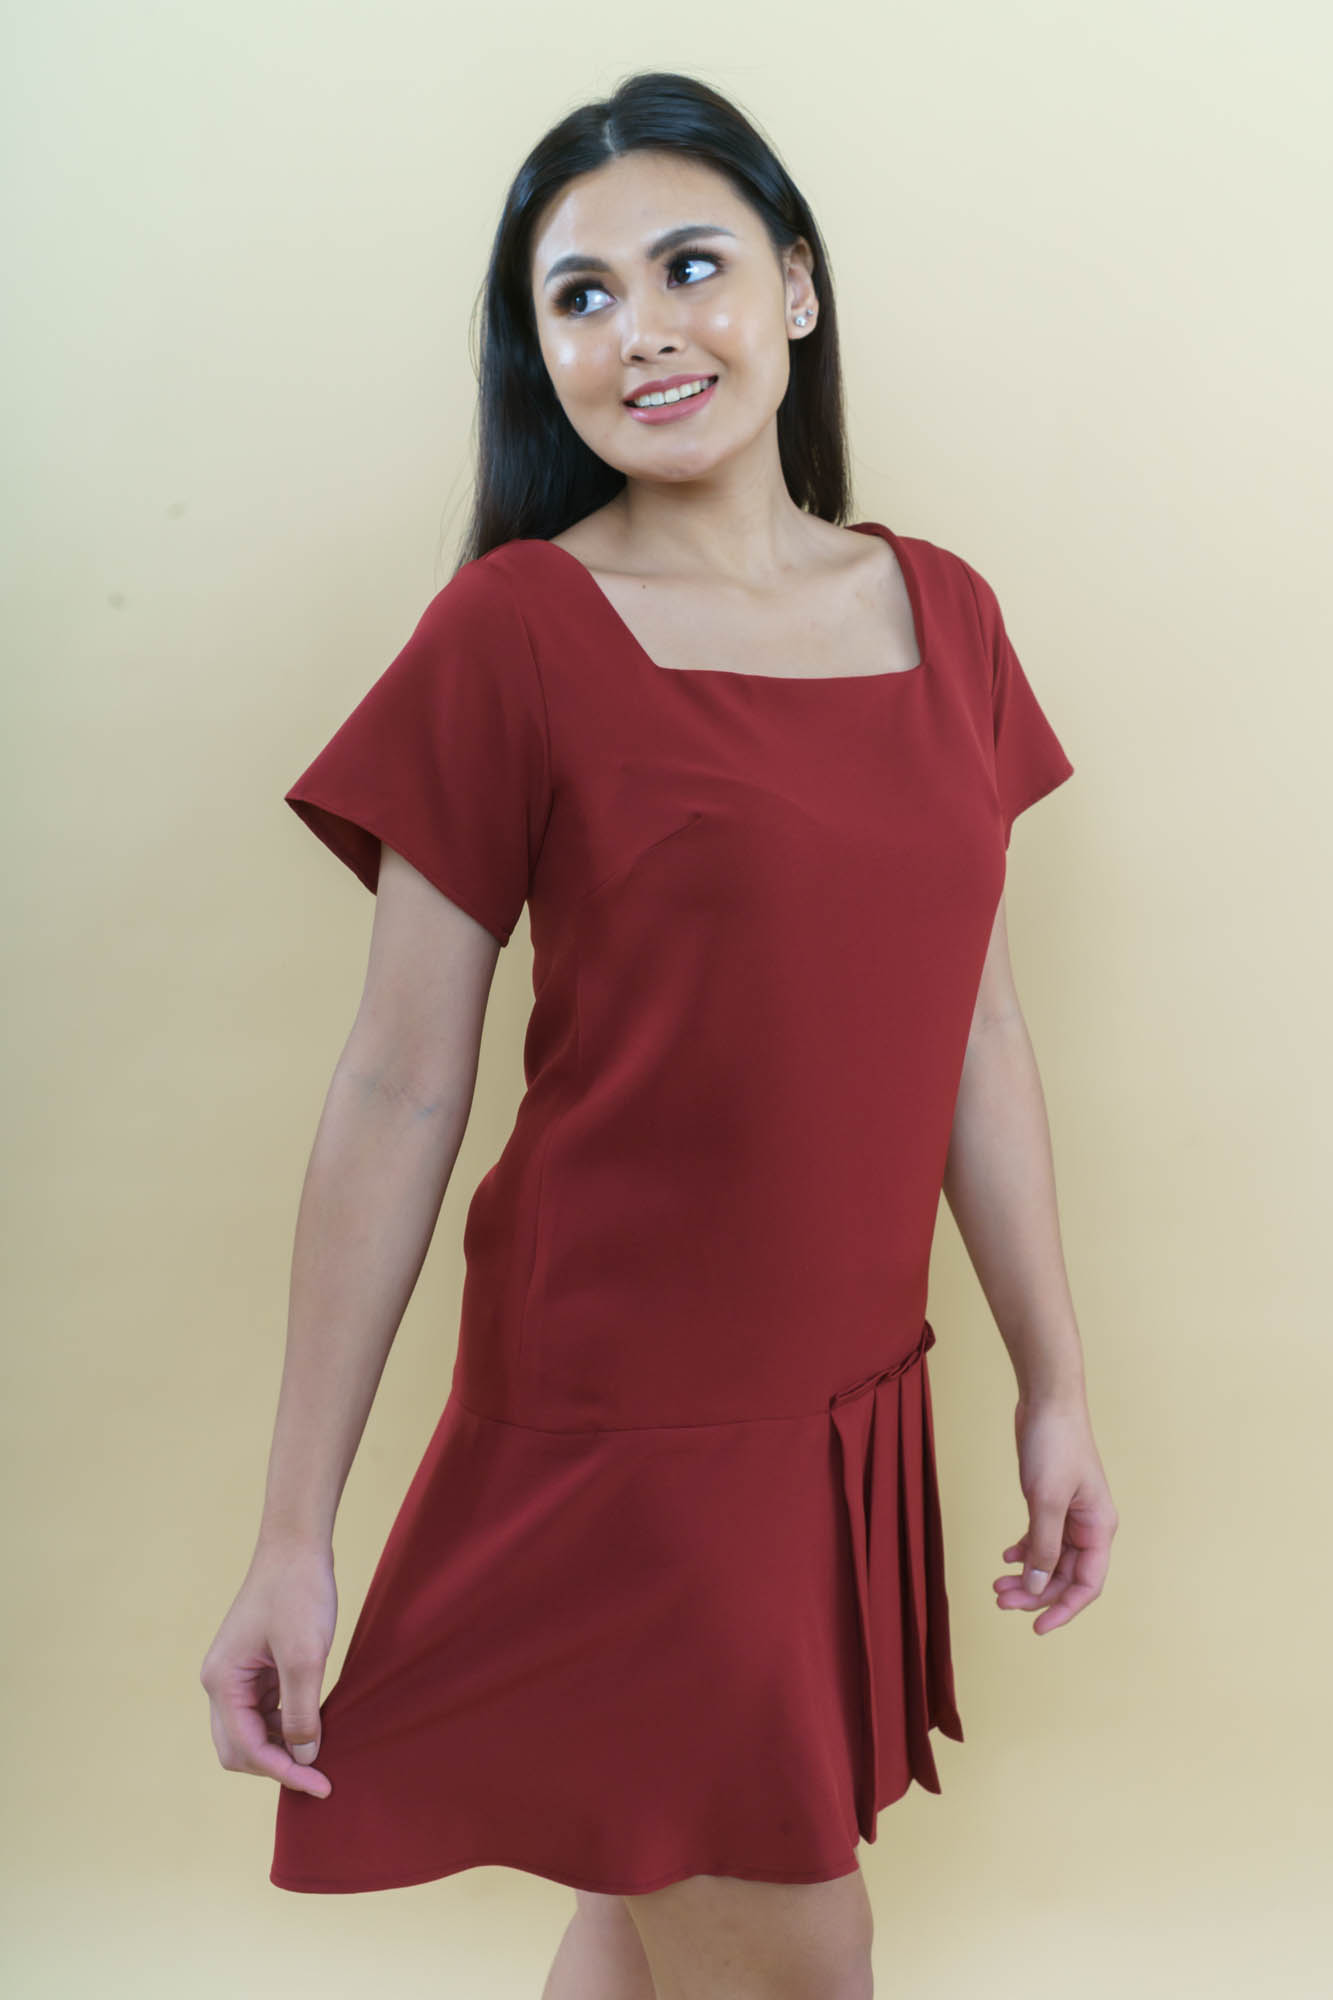 with pleats and ruffles